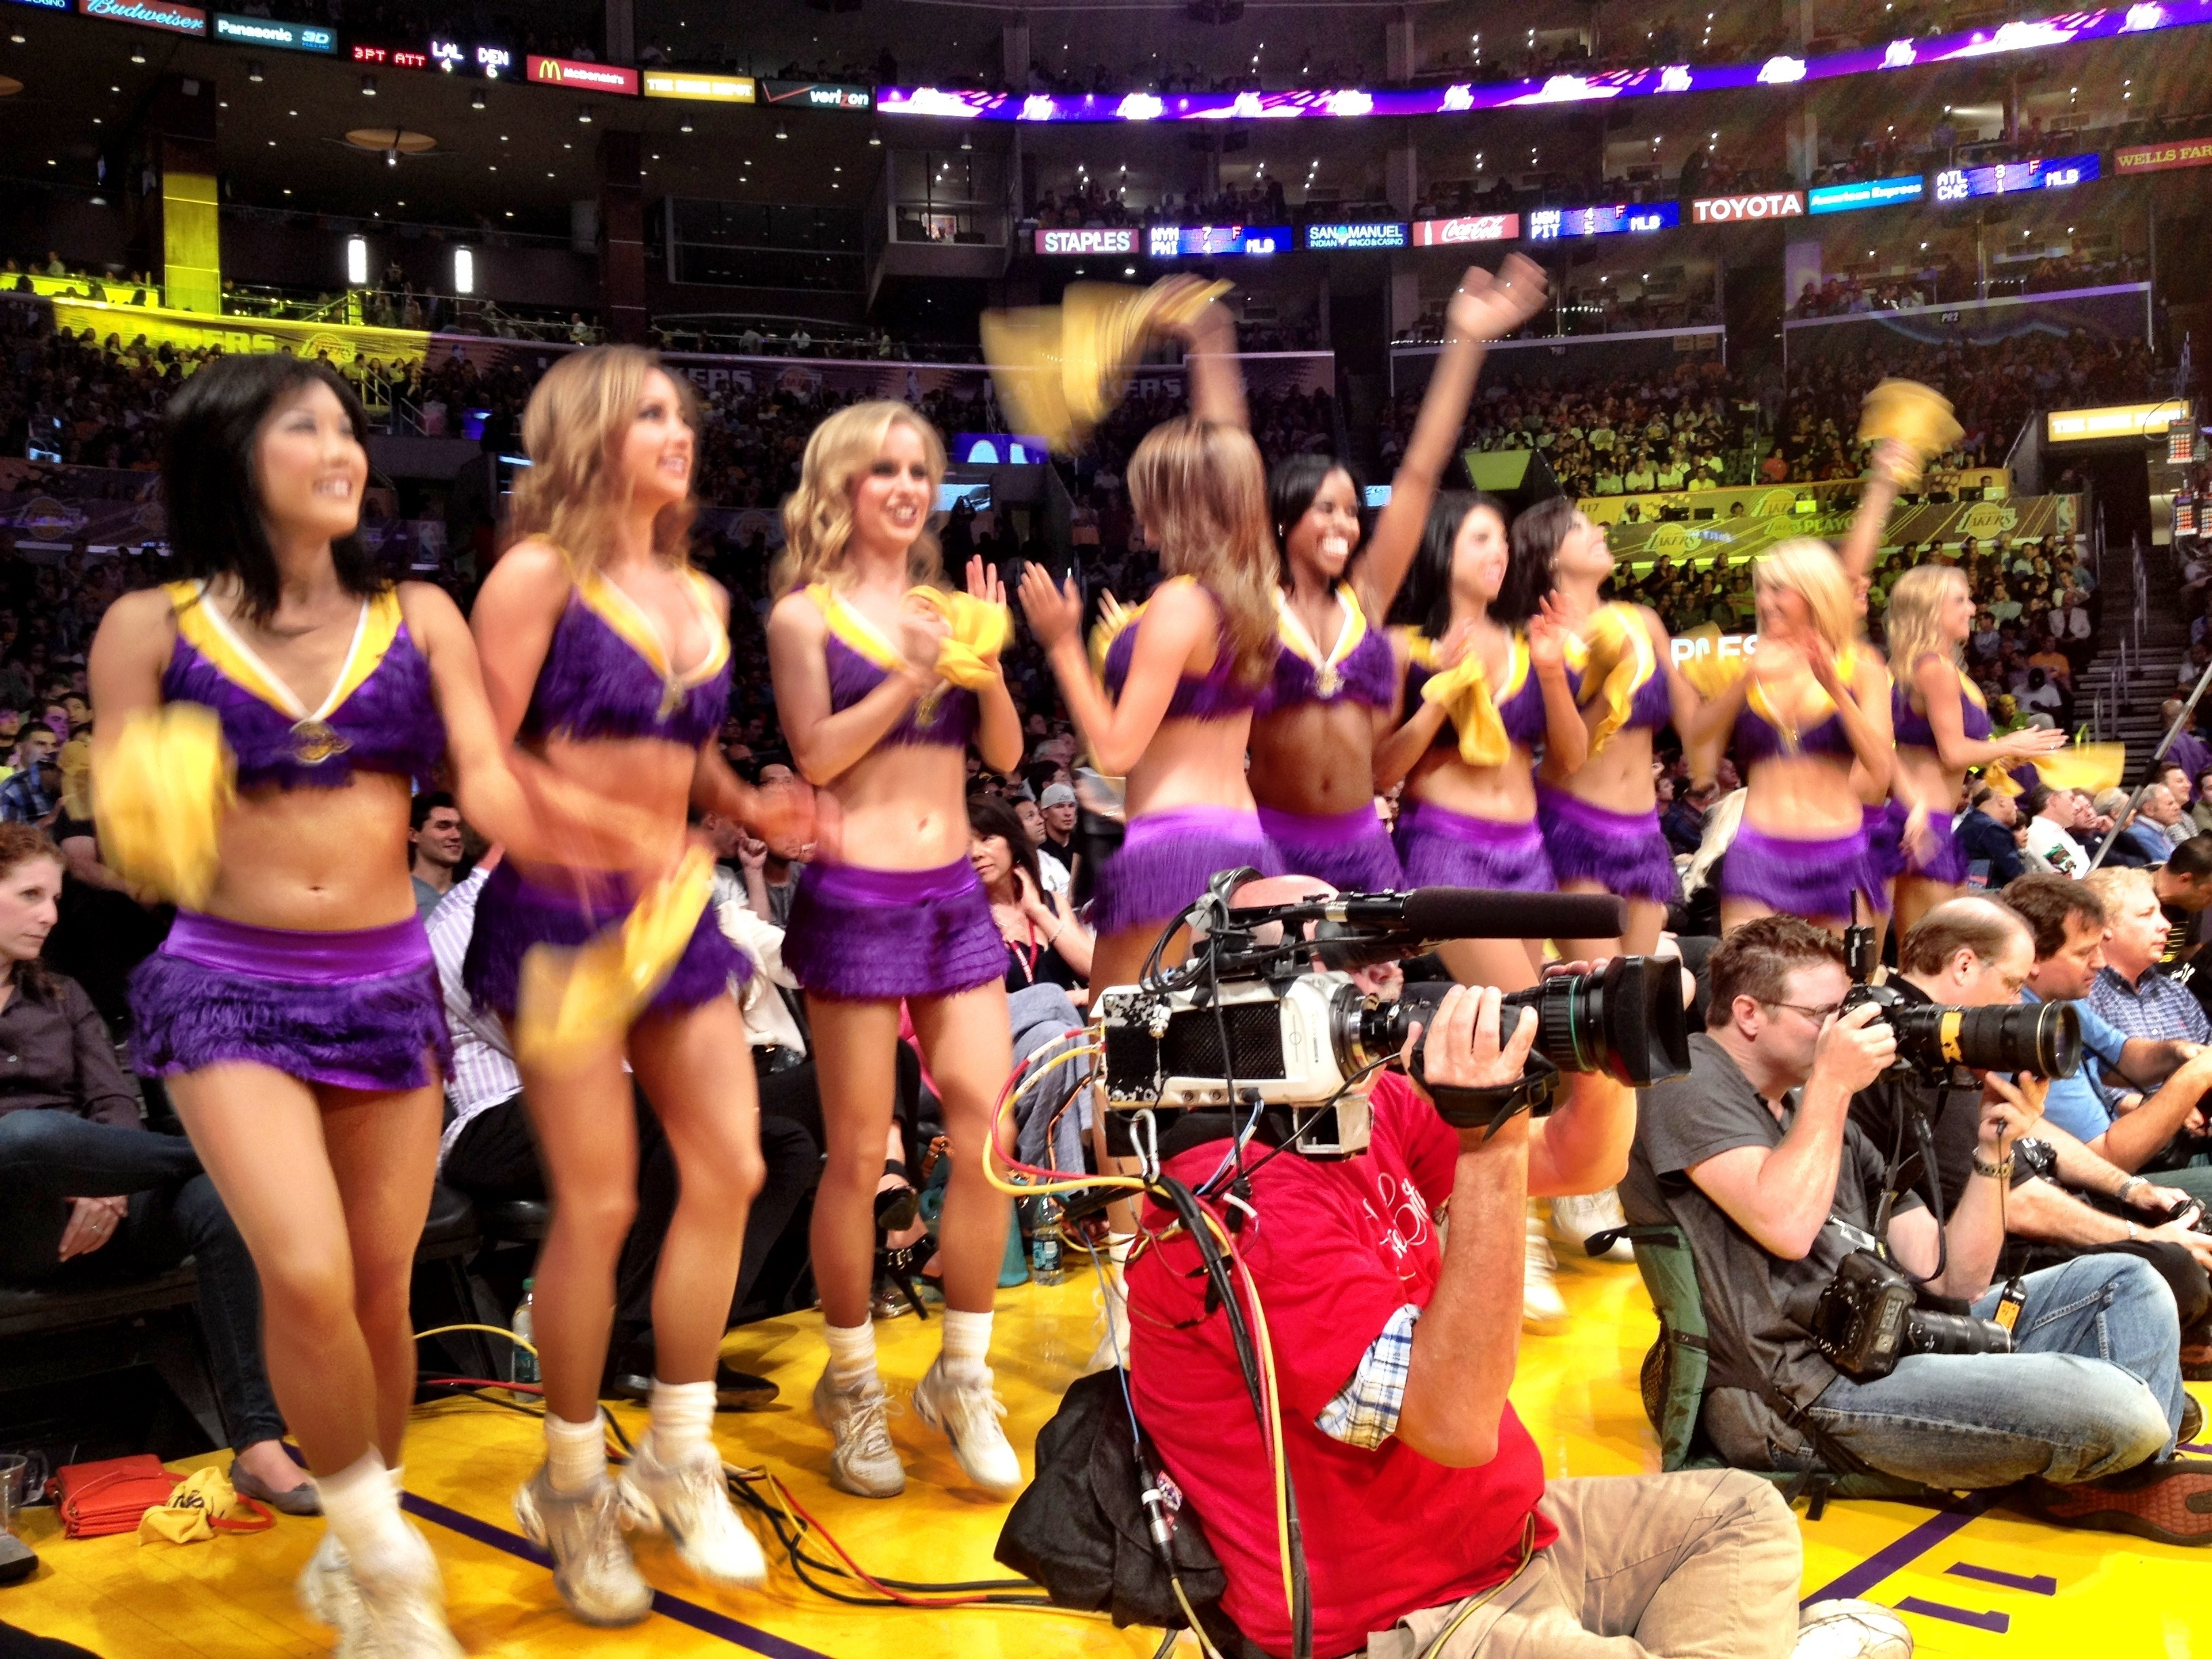 Lakers game 5 courtside